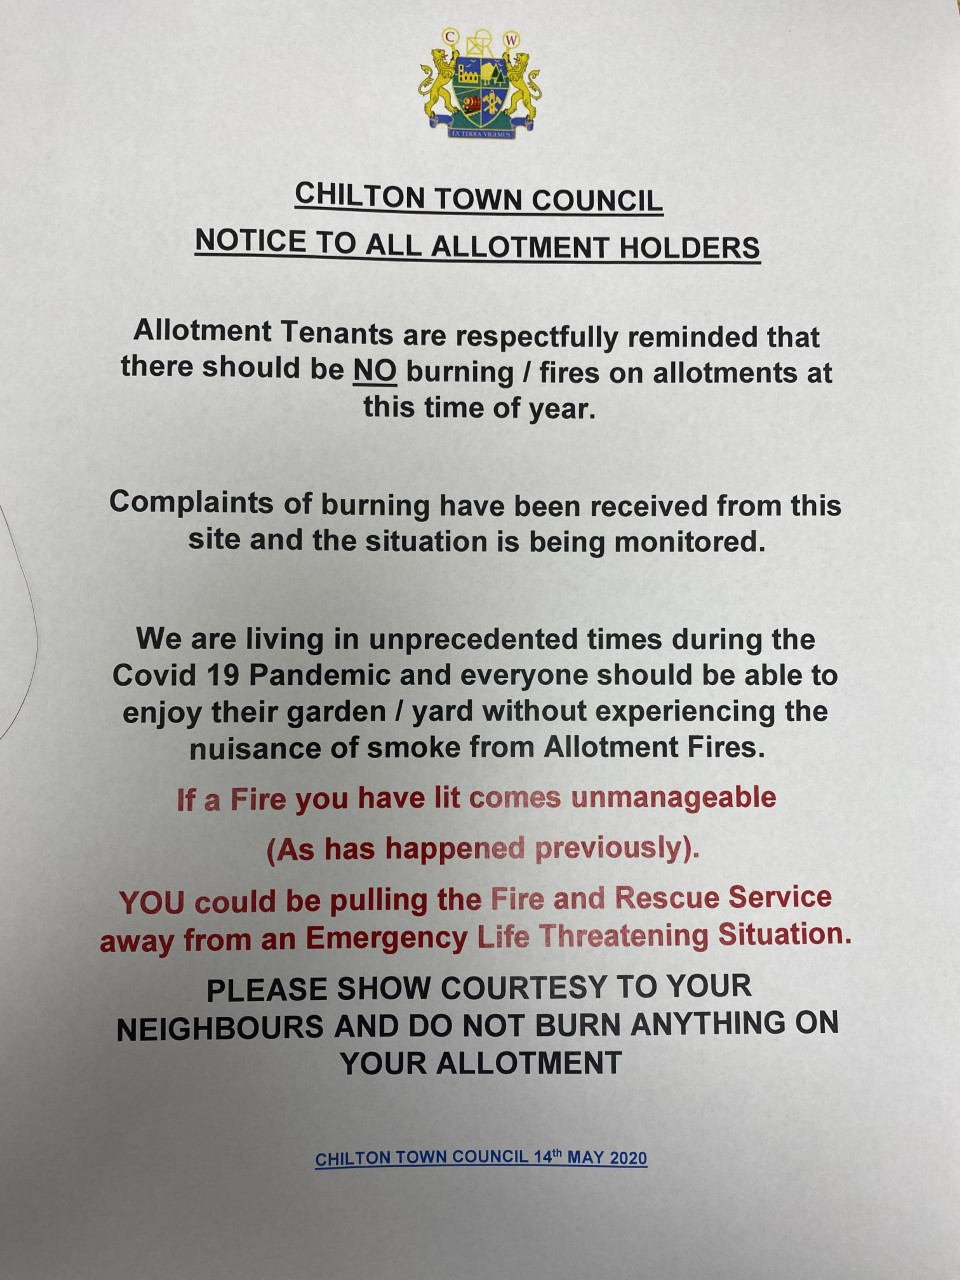 Council notice to allotment holders